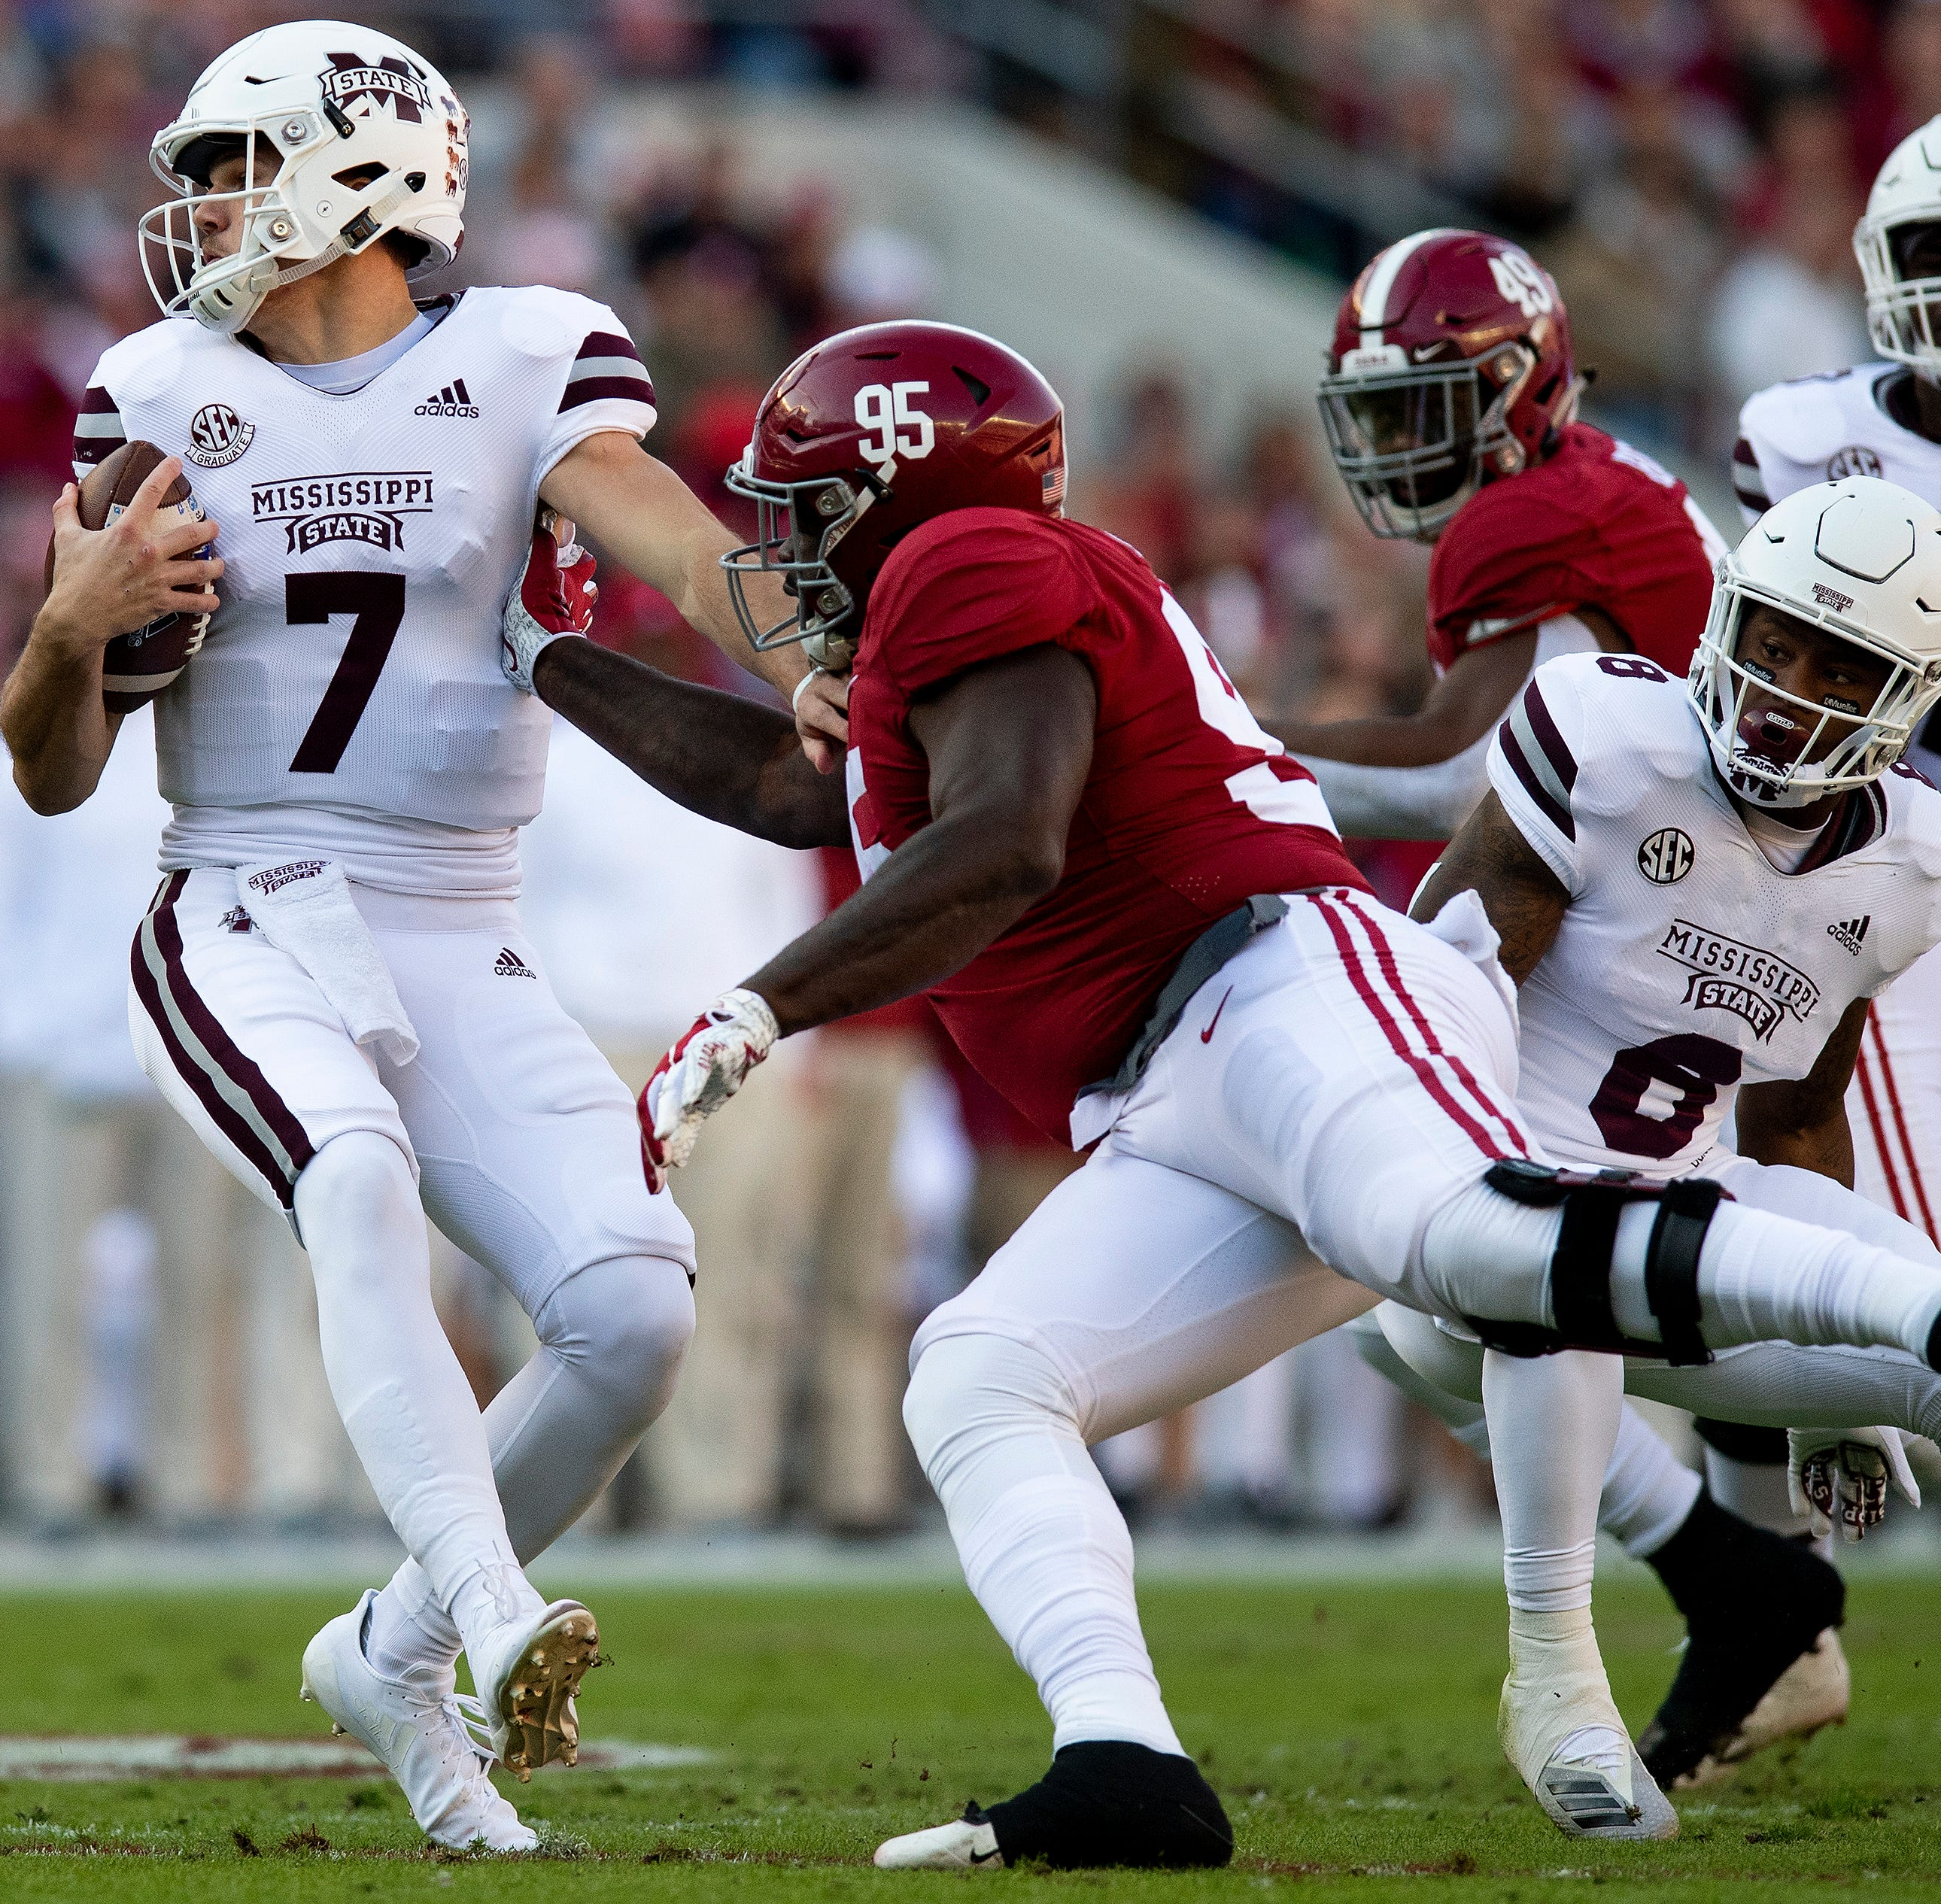 Sweet home (field advantage) Alabama: Crimson Tide questionably cruises by Mississippi State